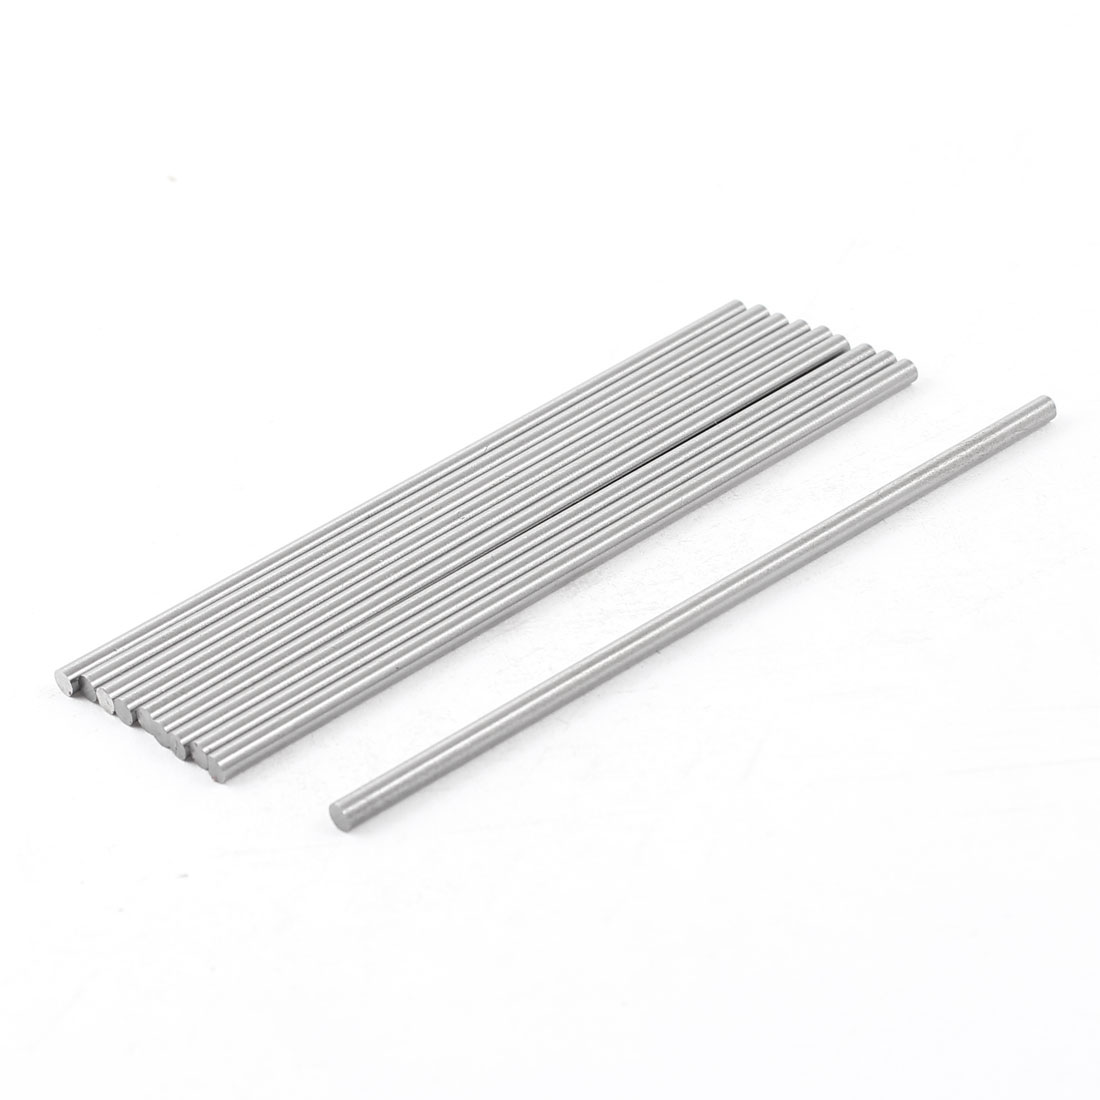 Unique Bargains 10x 3mm x 100mm HSS Grooving Tool Round Turning Lathe Bars Silver Gray by